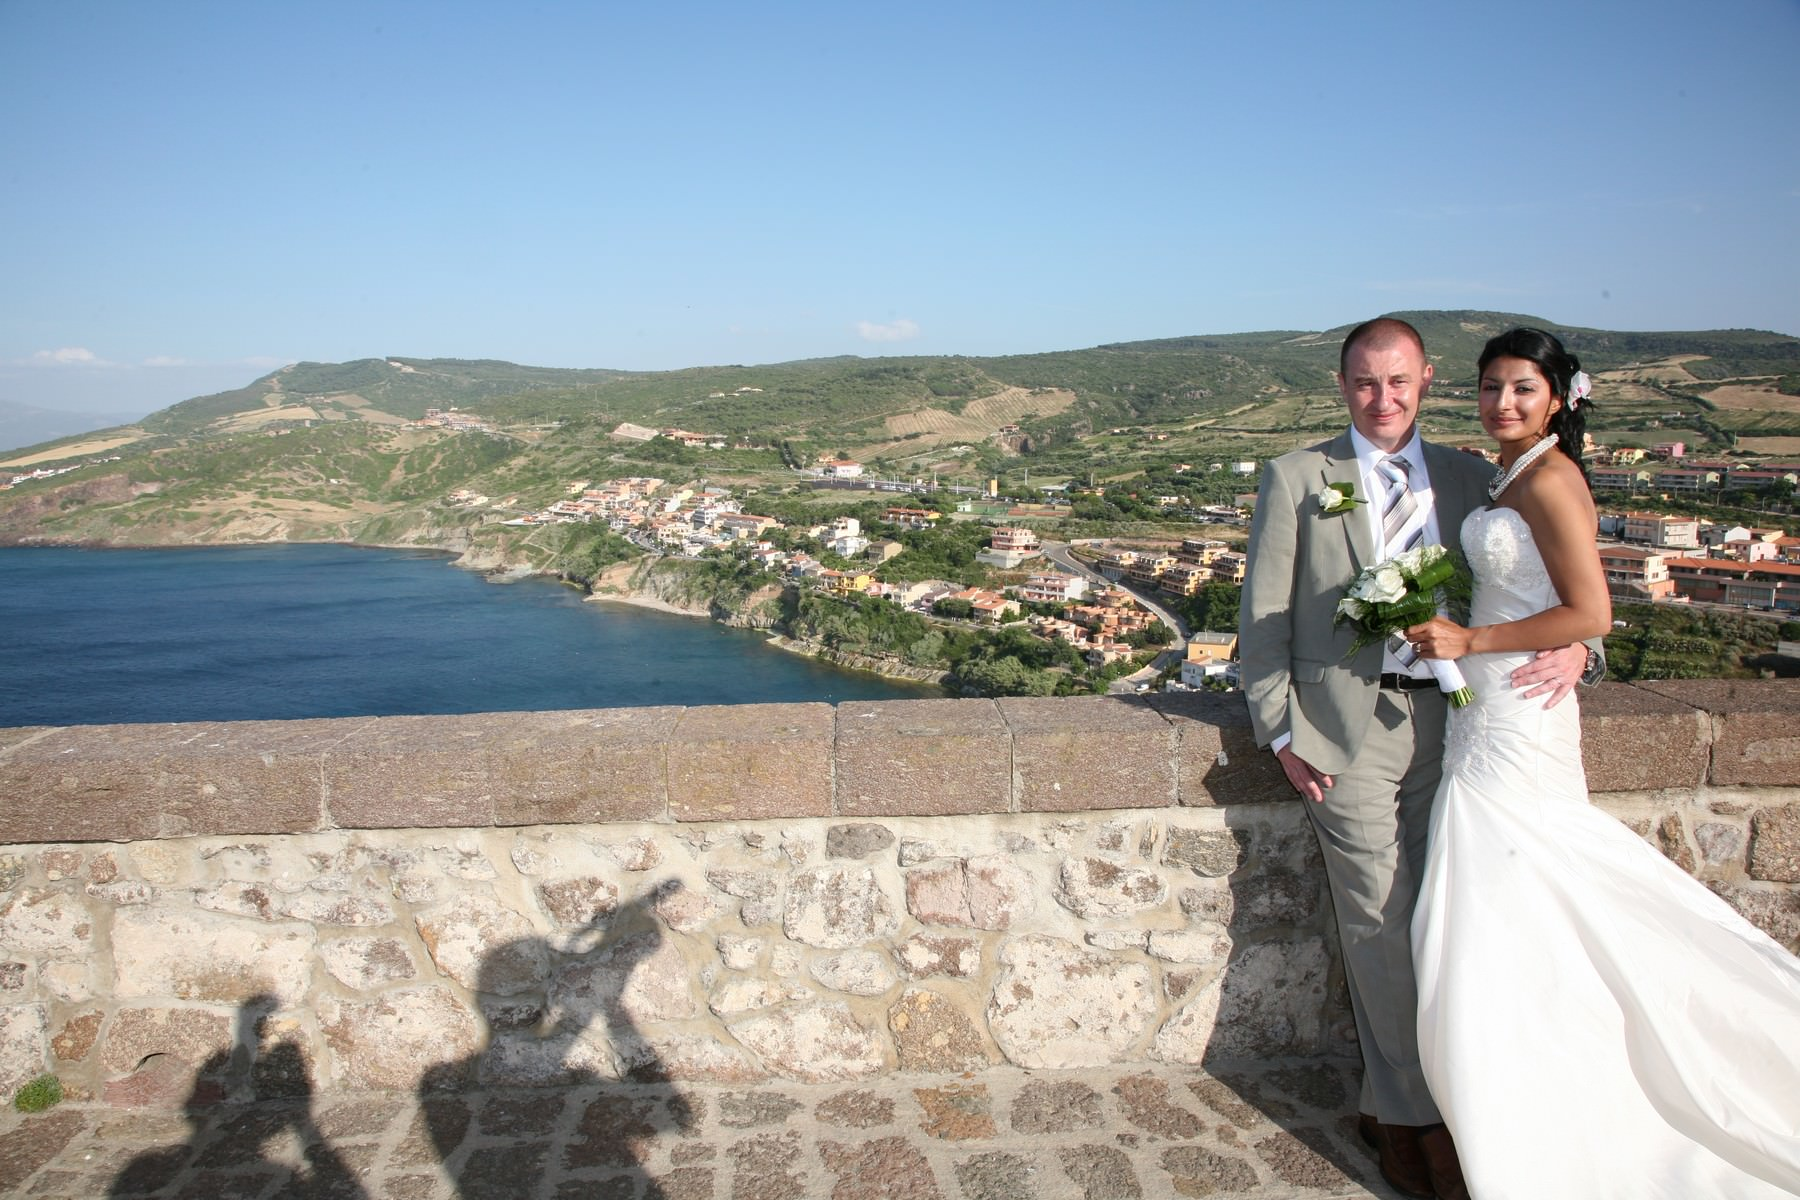 sardinia wedding review